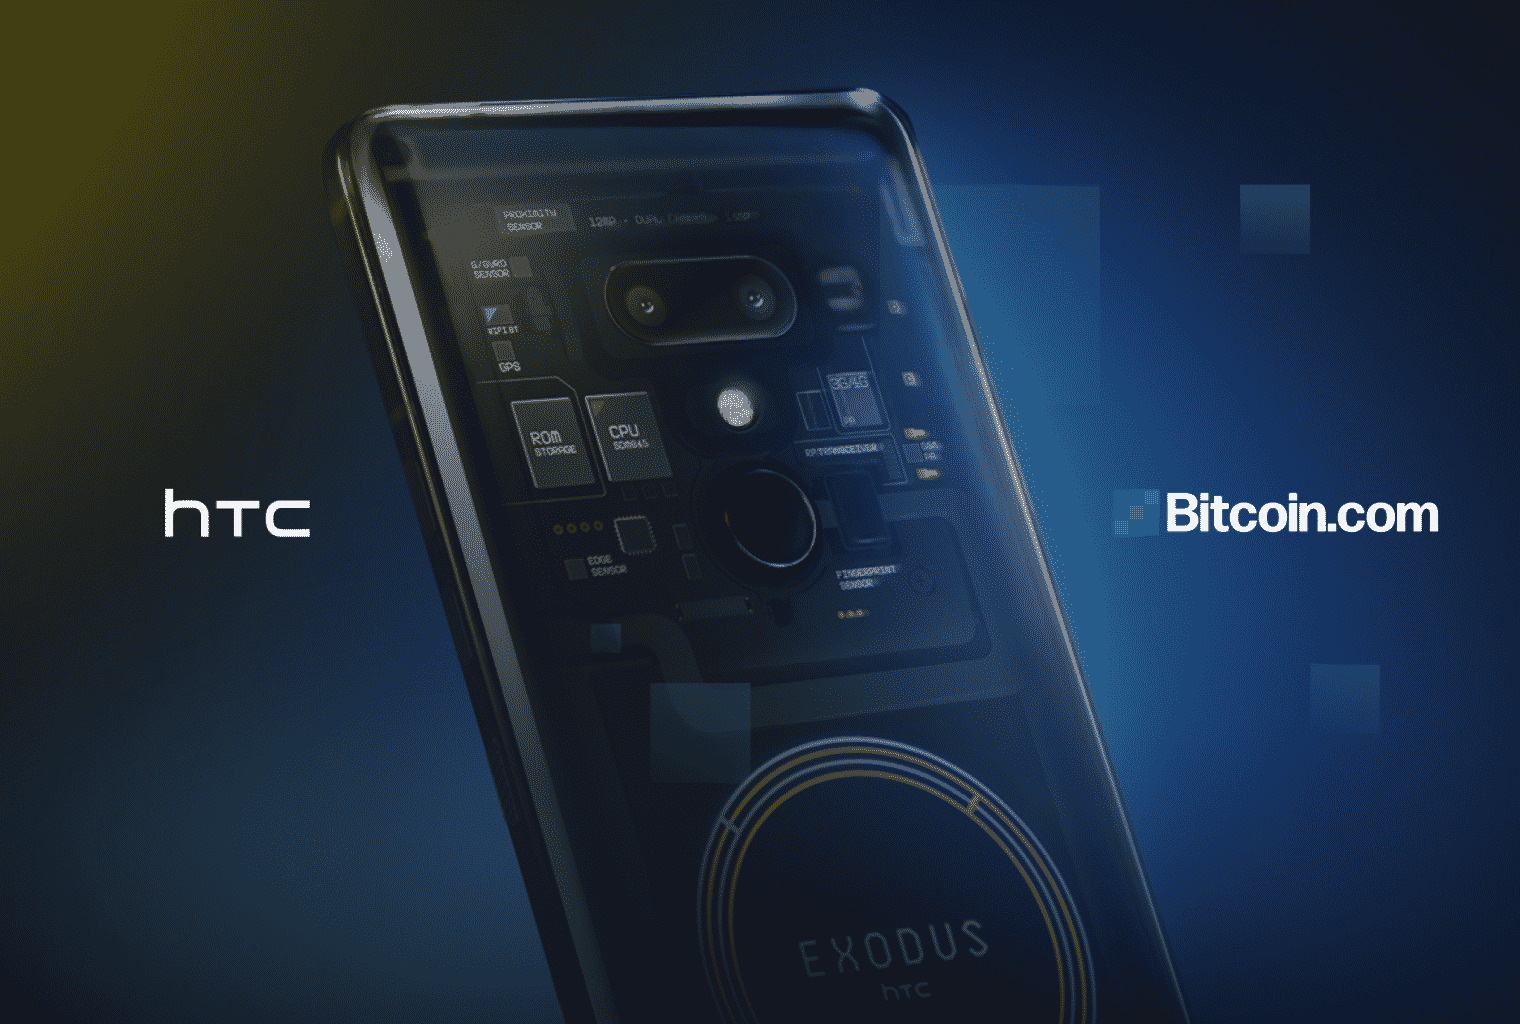 Bitcoin.com Join Hands With HTC